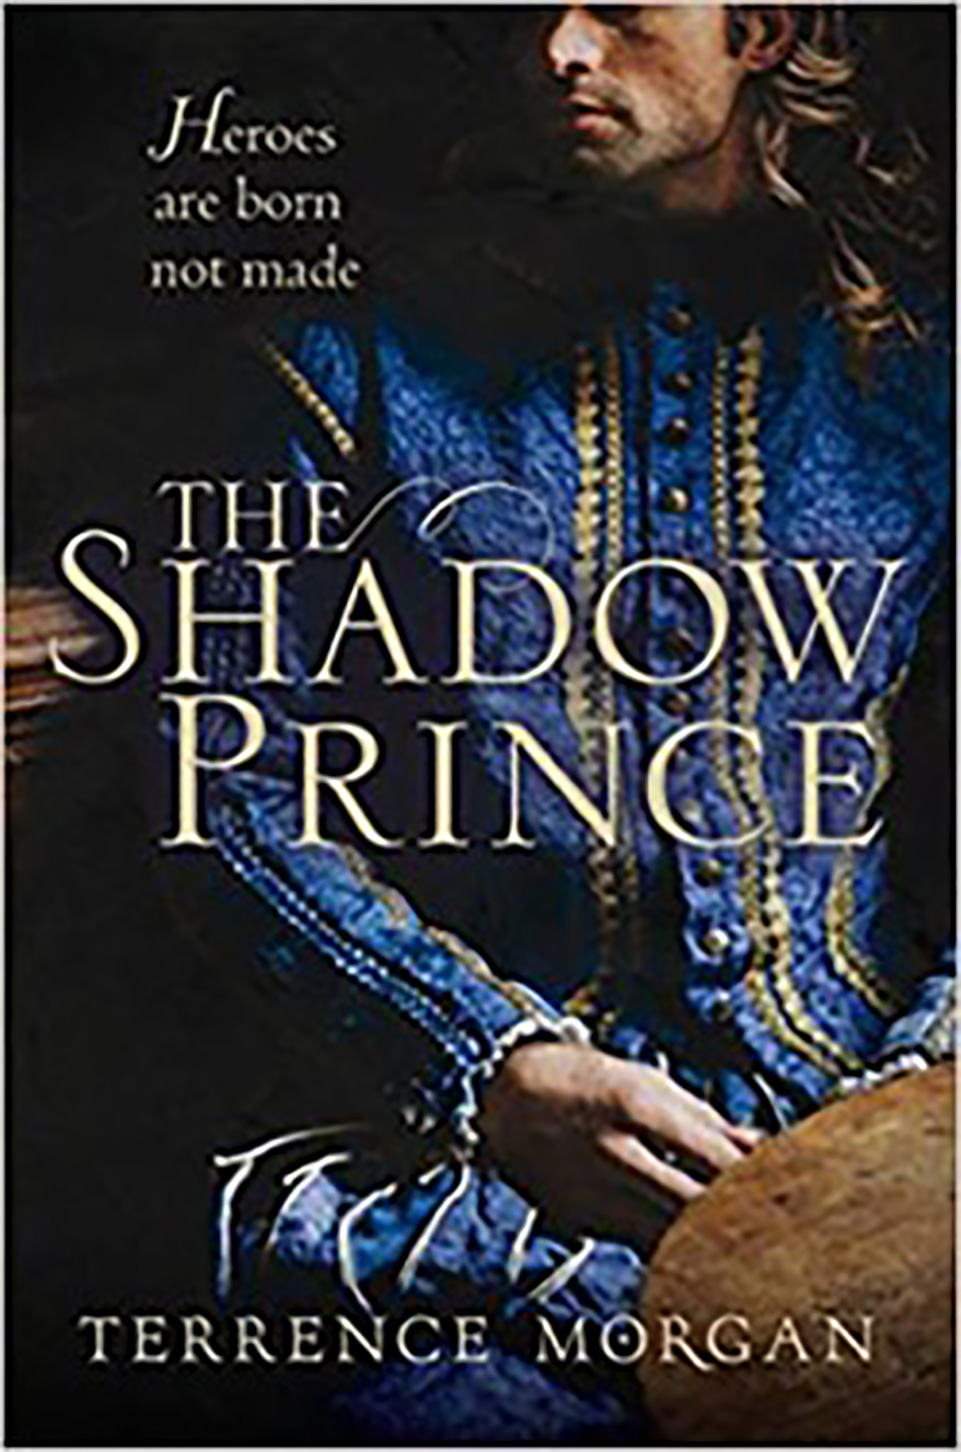 Front cover of a book: The Shadow Prince by Terence Morgan